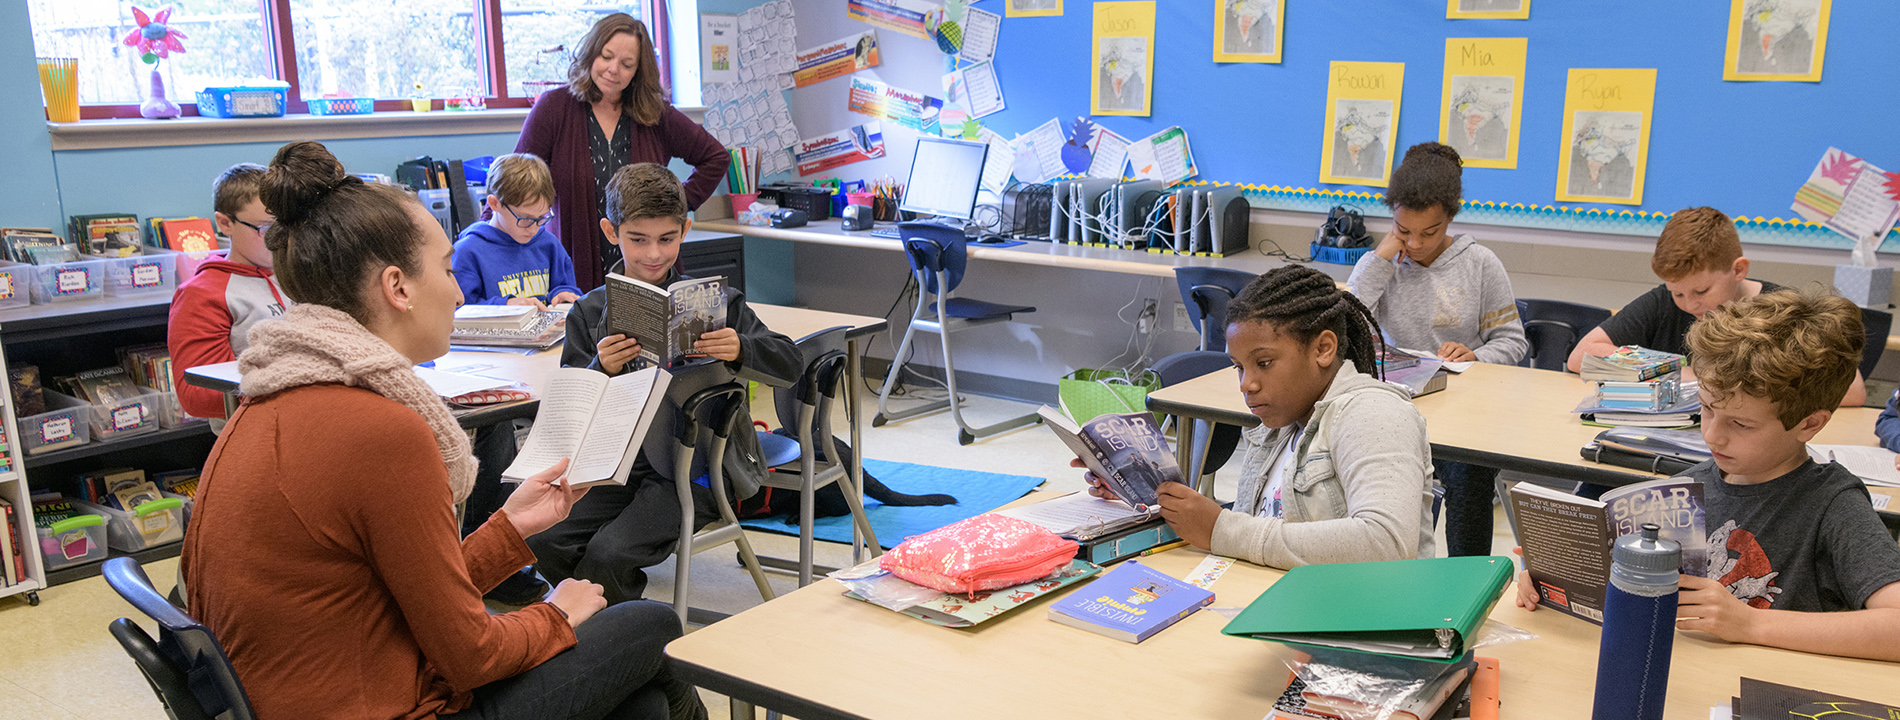 Student teacher reads to classroom of students at The College School